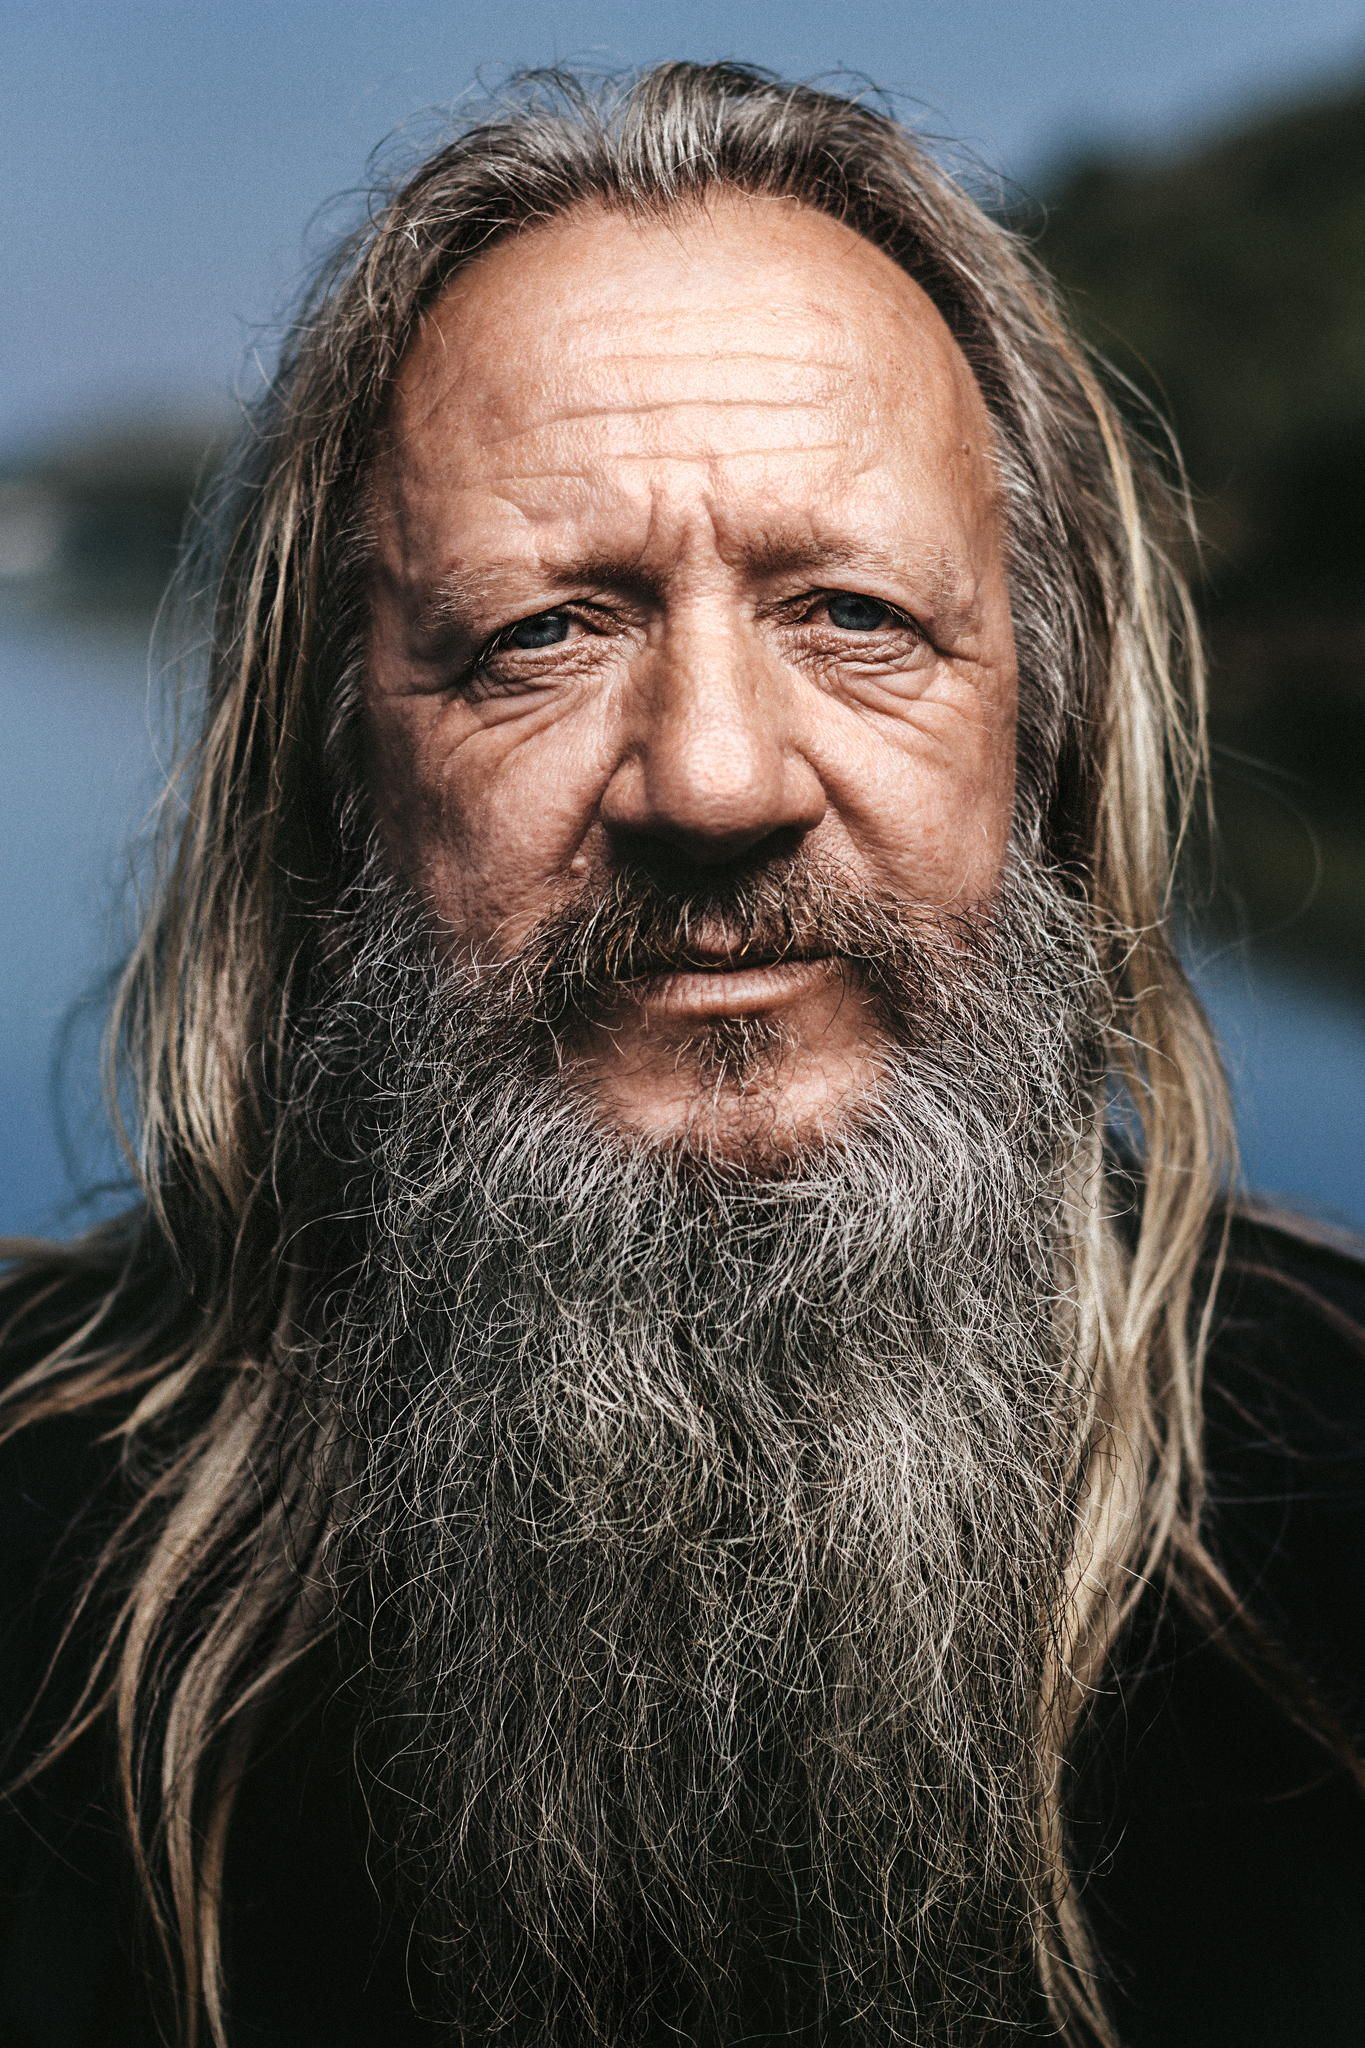 Portrait Of An Old Fishermen With Long Hair And White